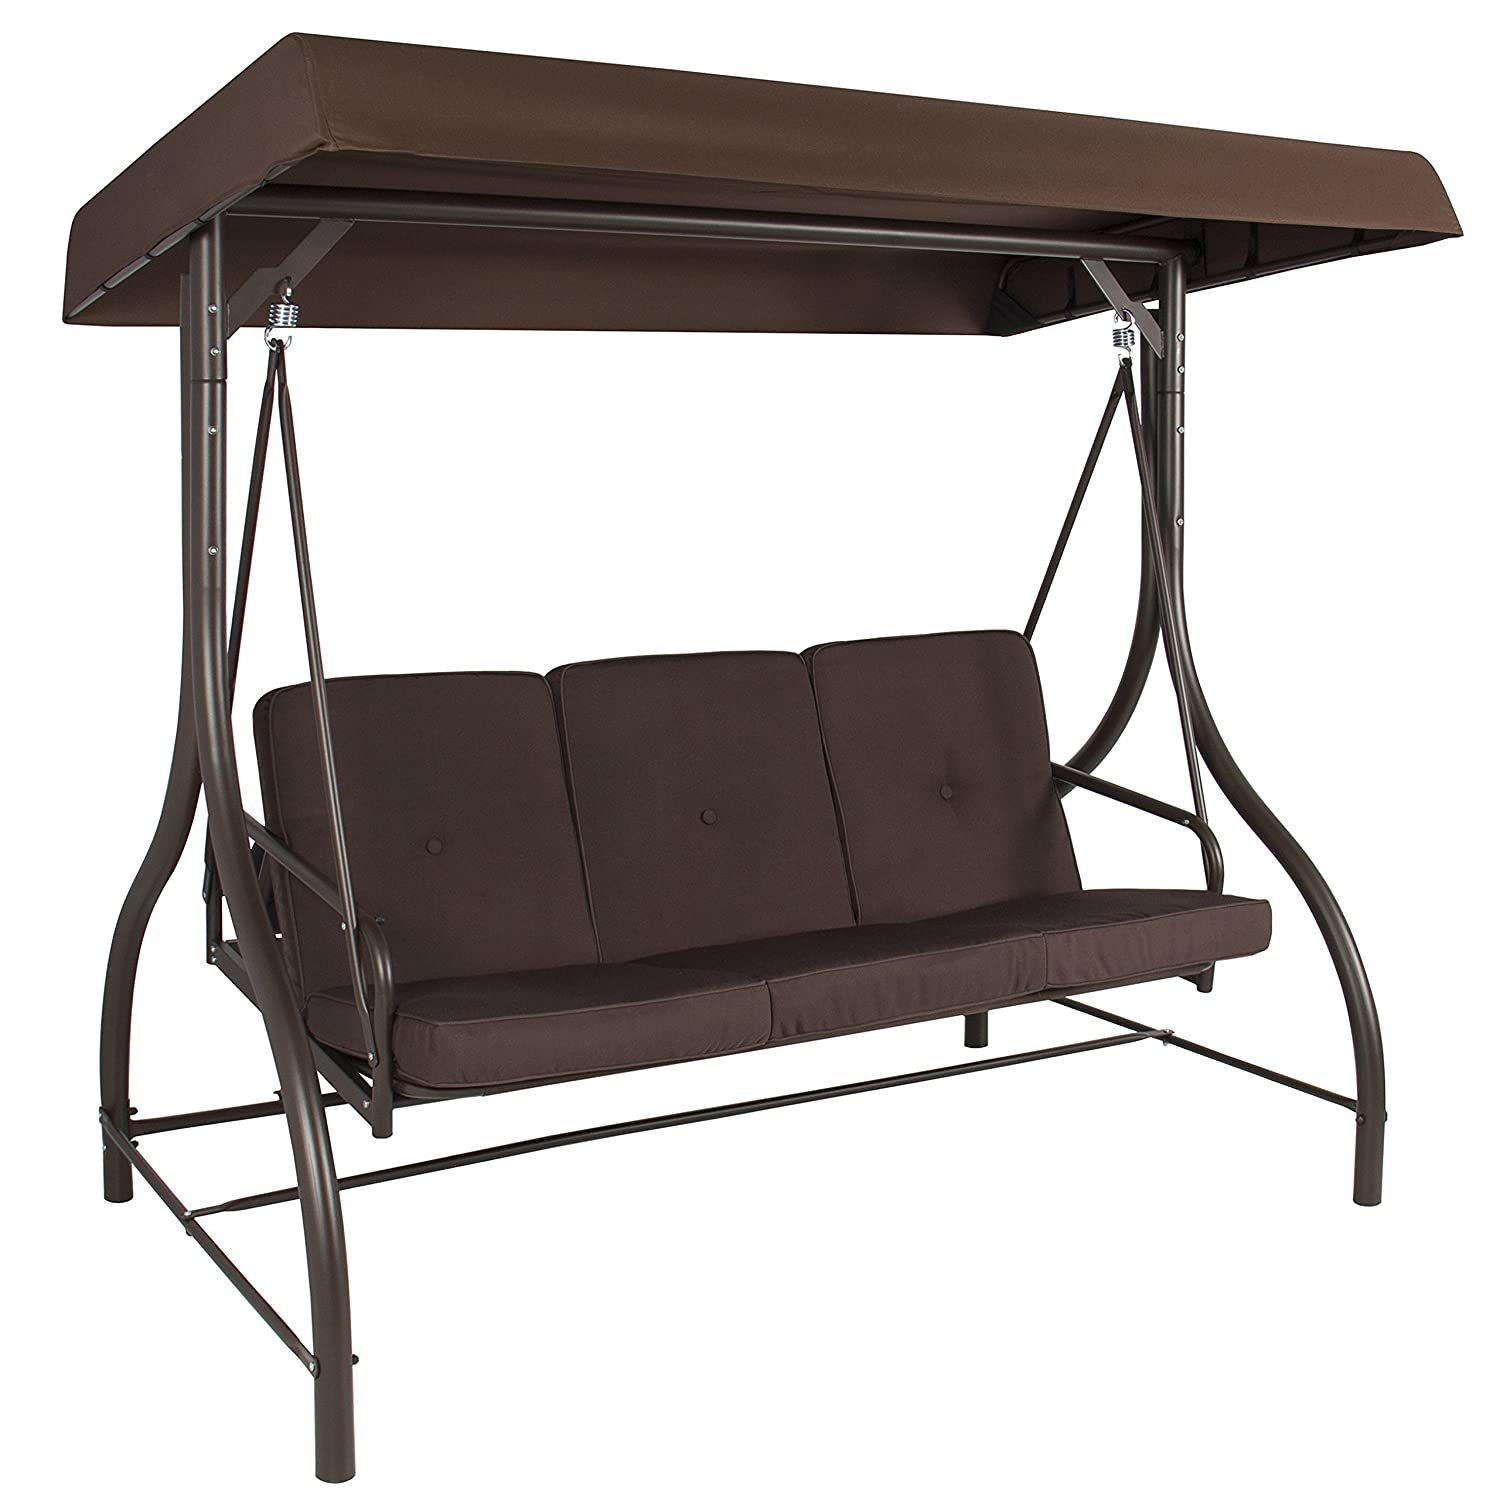 Amazon.com  Best Choice Products Converting Outdoor Swing Canopy Hammock Seats 3 Patio Deck Furniture Brown  Garden u0026 Outdoor  sc 1 st  Amazon.com & Amazon.com : Best Choice Products Converting Outdoor Swing Canopy ...